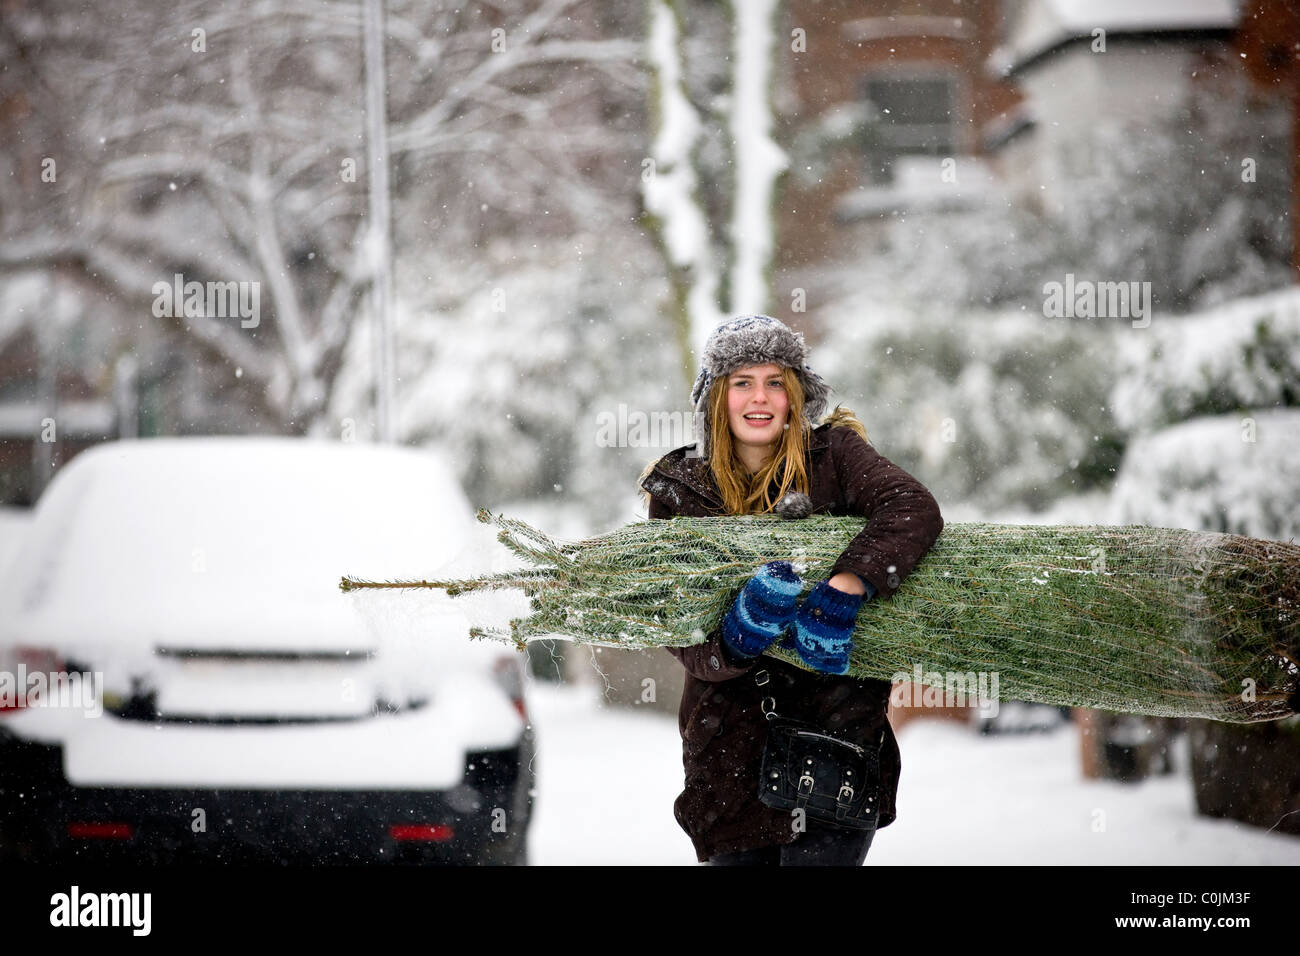 A young woman carrying a Christmas tree along a snowy street Stock Photo